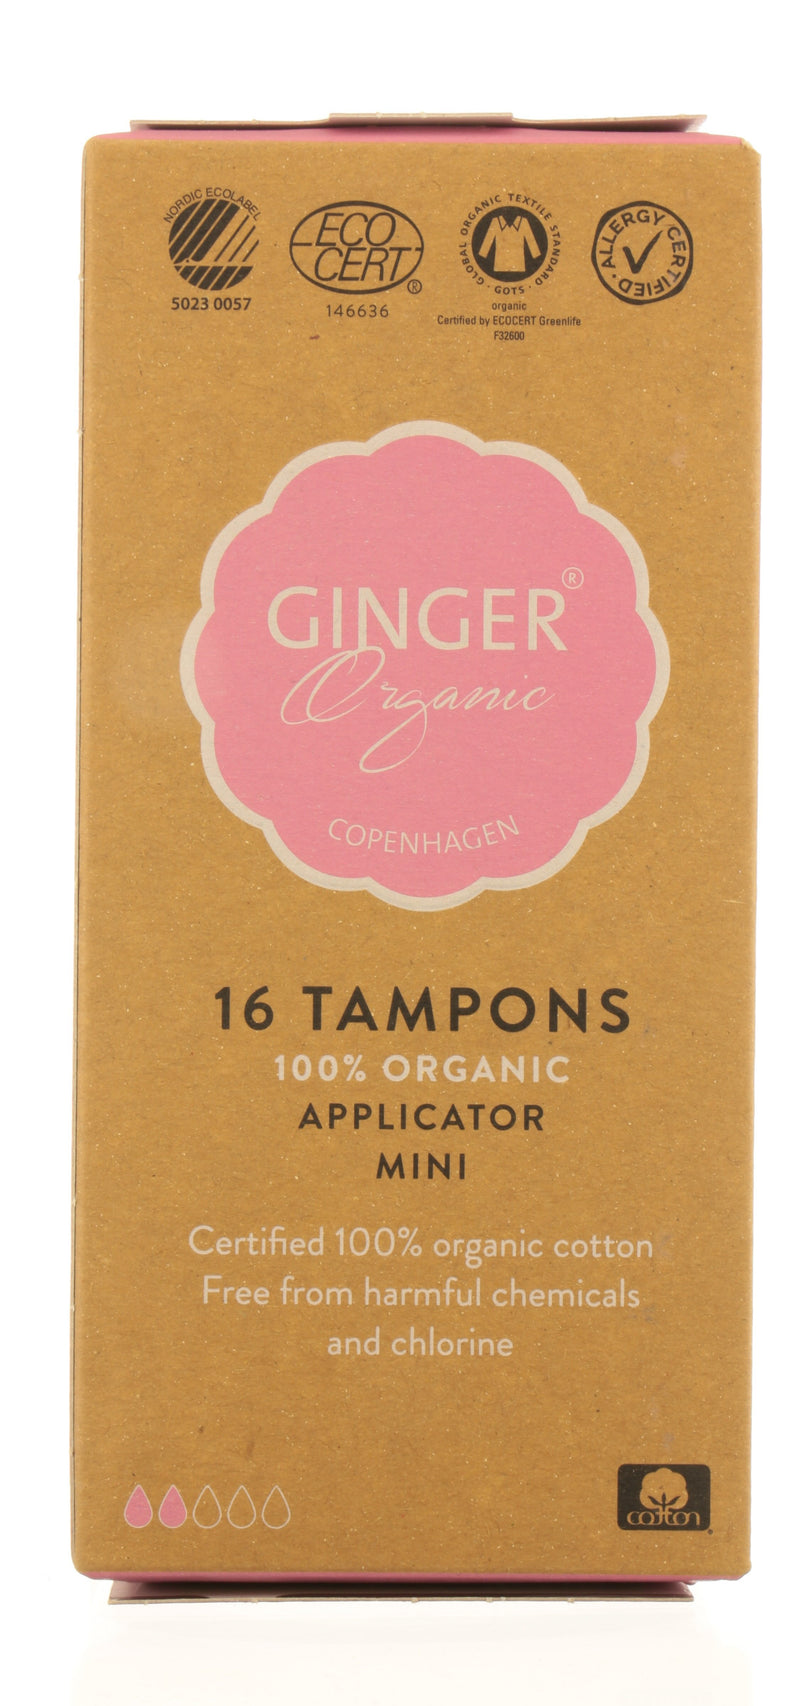 GINGER ORGANIC Tampons with applicator - Mini